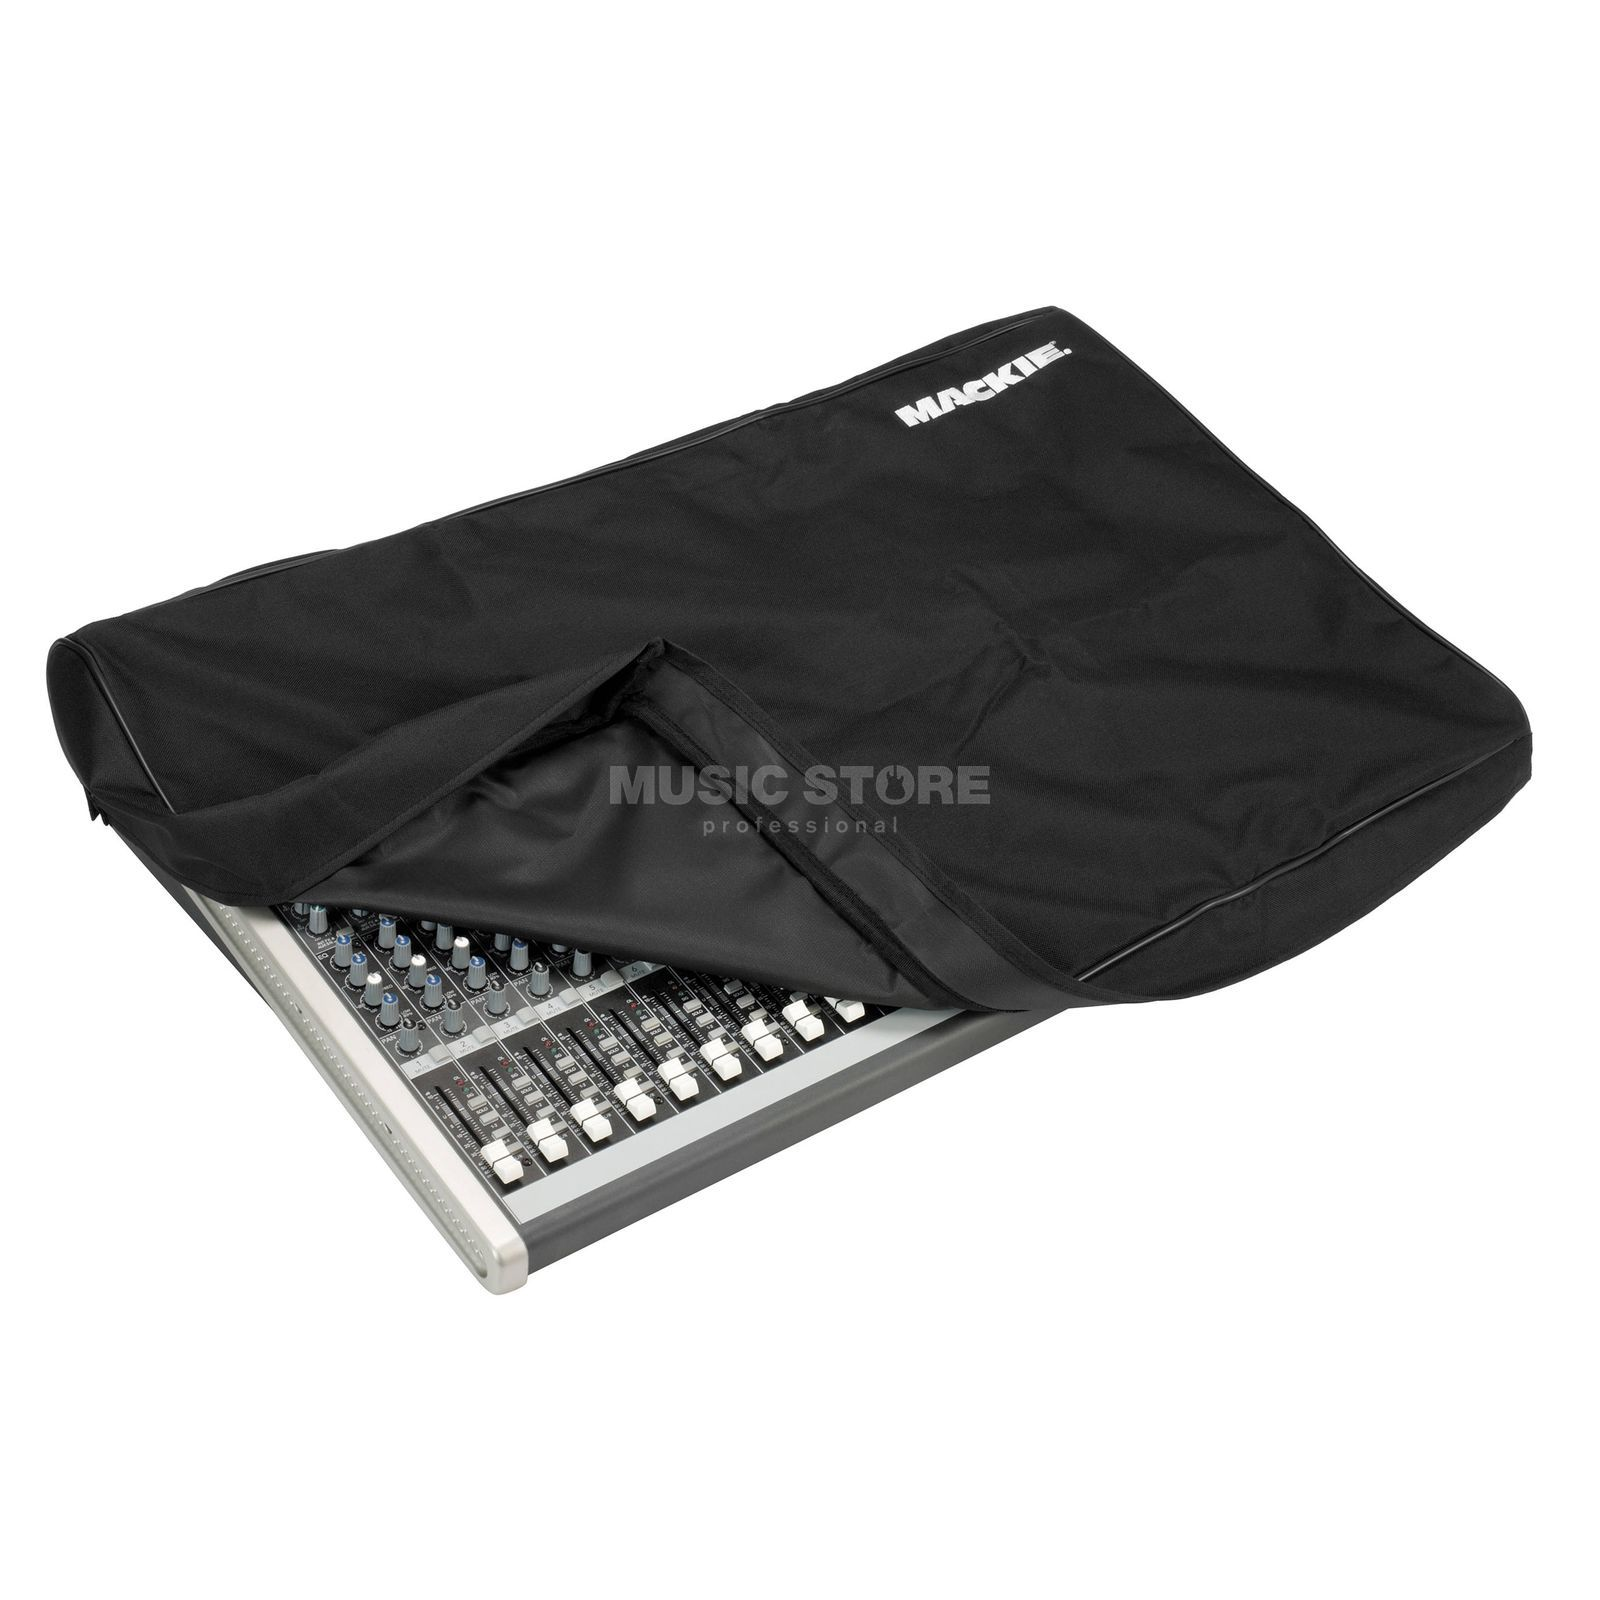 Mackie Dust Cover 2404-VLZ3 & SR24.4 Product Image